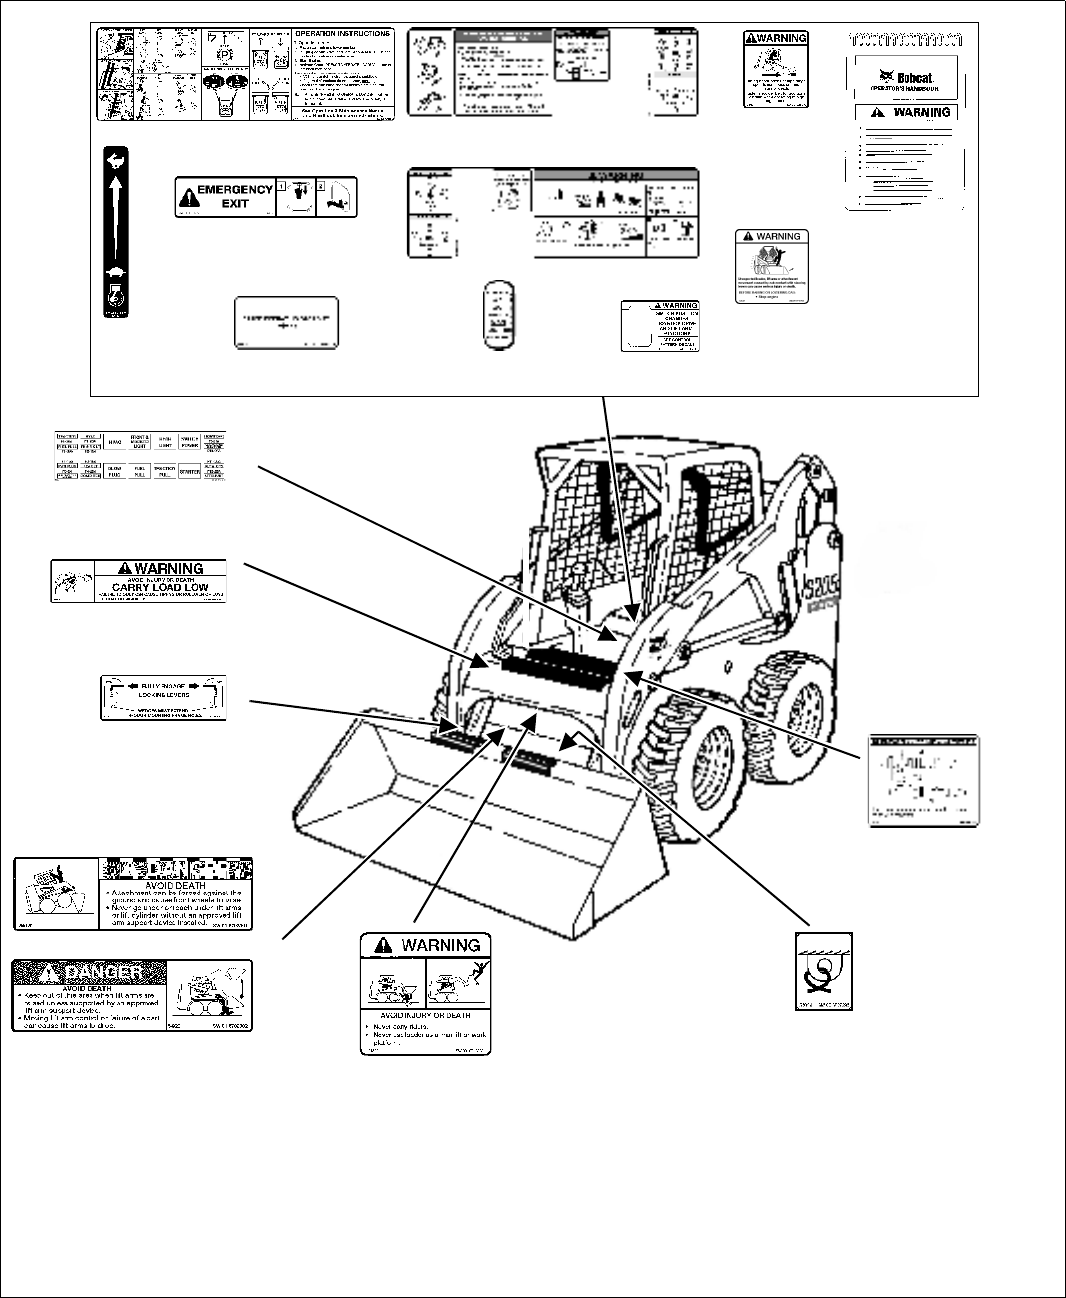 hight resolution of bobcat fuse box location wiring diagram showbobcat fuse box location wiring diagram bobcat 753 fuse box